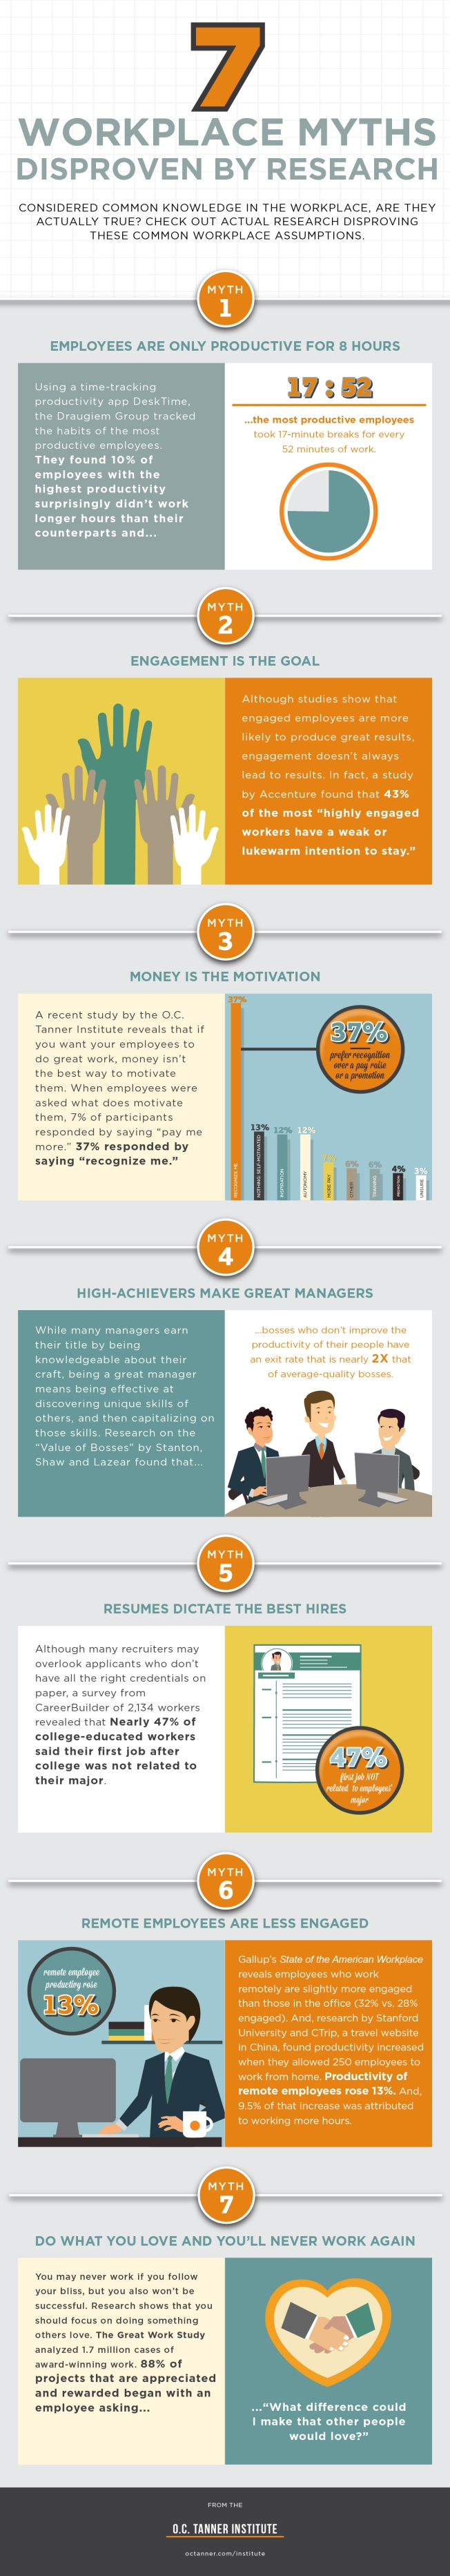 7 workplace misconceptions